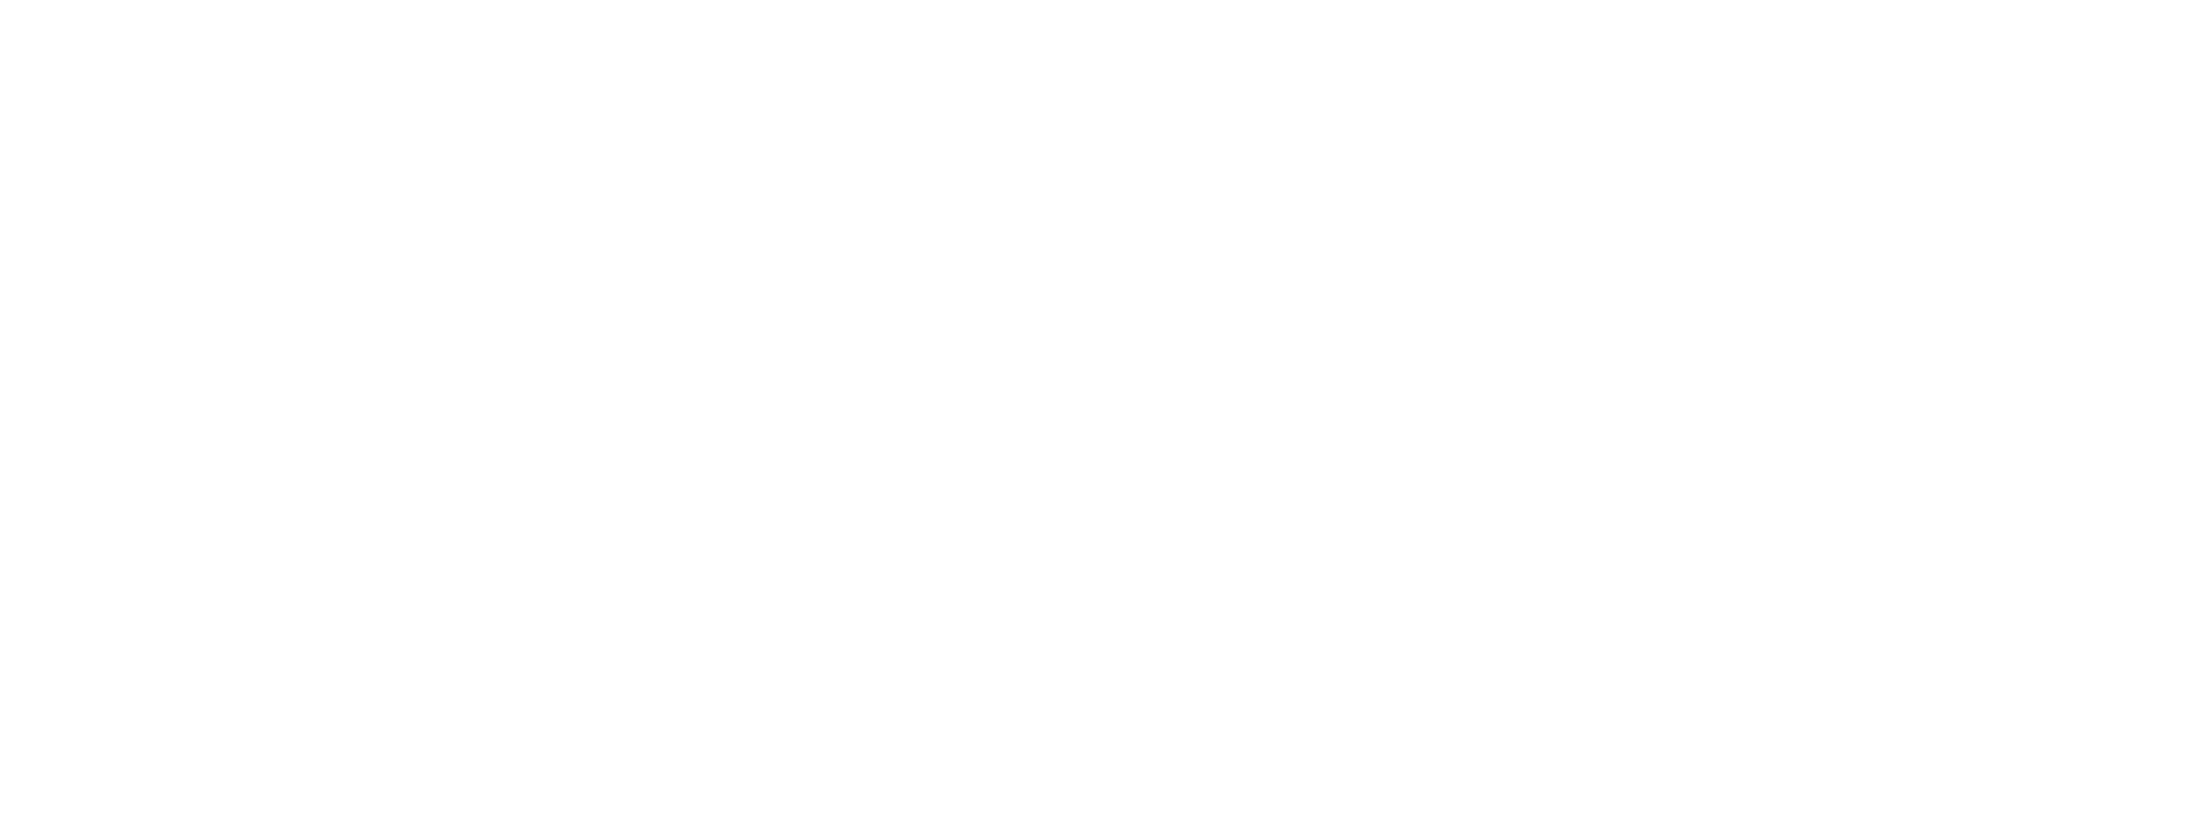 John Ed Mathison Leadership Ministries